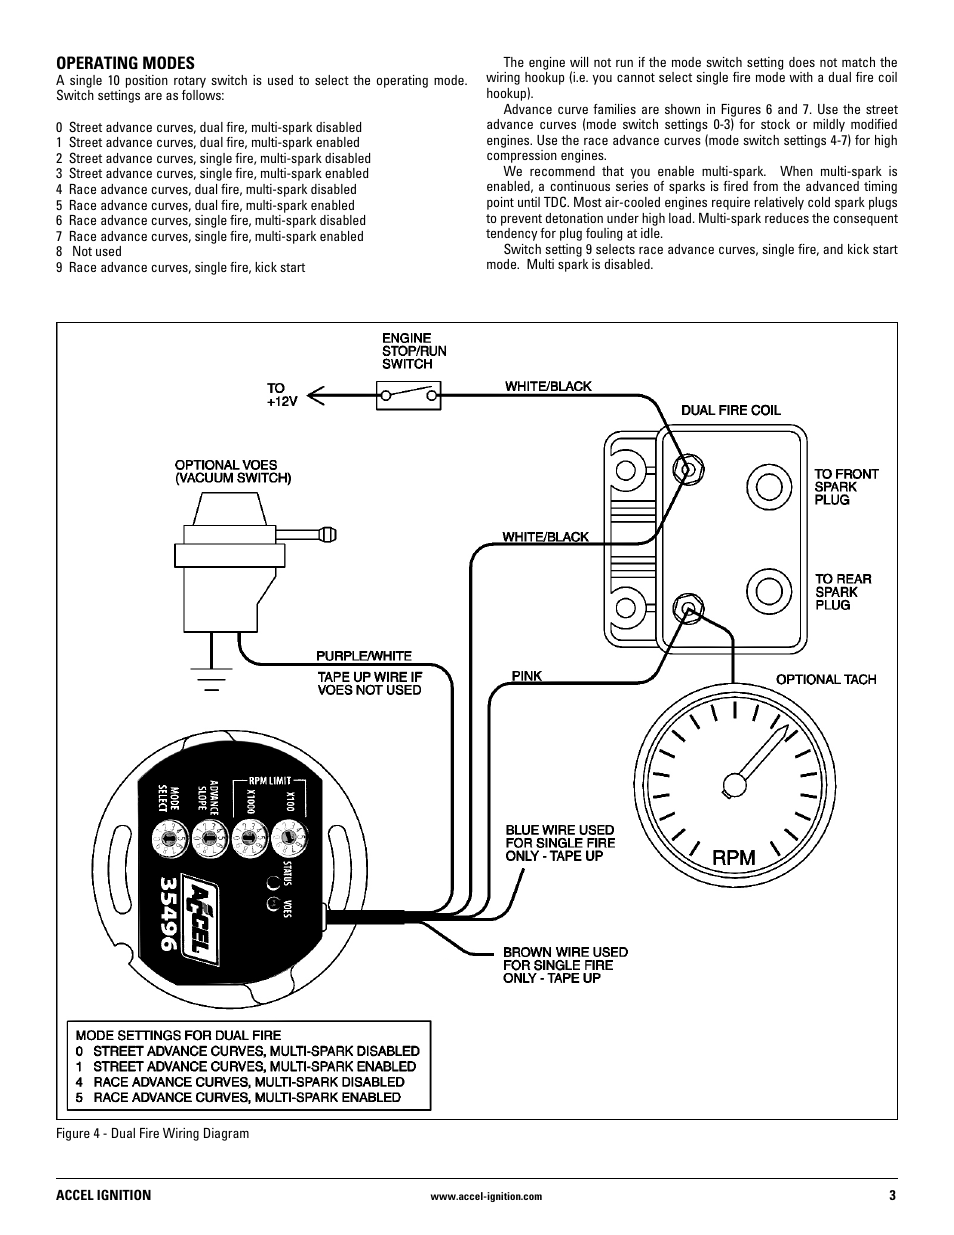 mallory ignition accel ignition 35496 page3?resize\\\\\\\\\\\\\\\=665%2C861 mallory unilite wiring diagram tamahuproject org mallory unilite distributor wiring diagram at gsmx.co